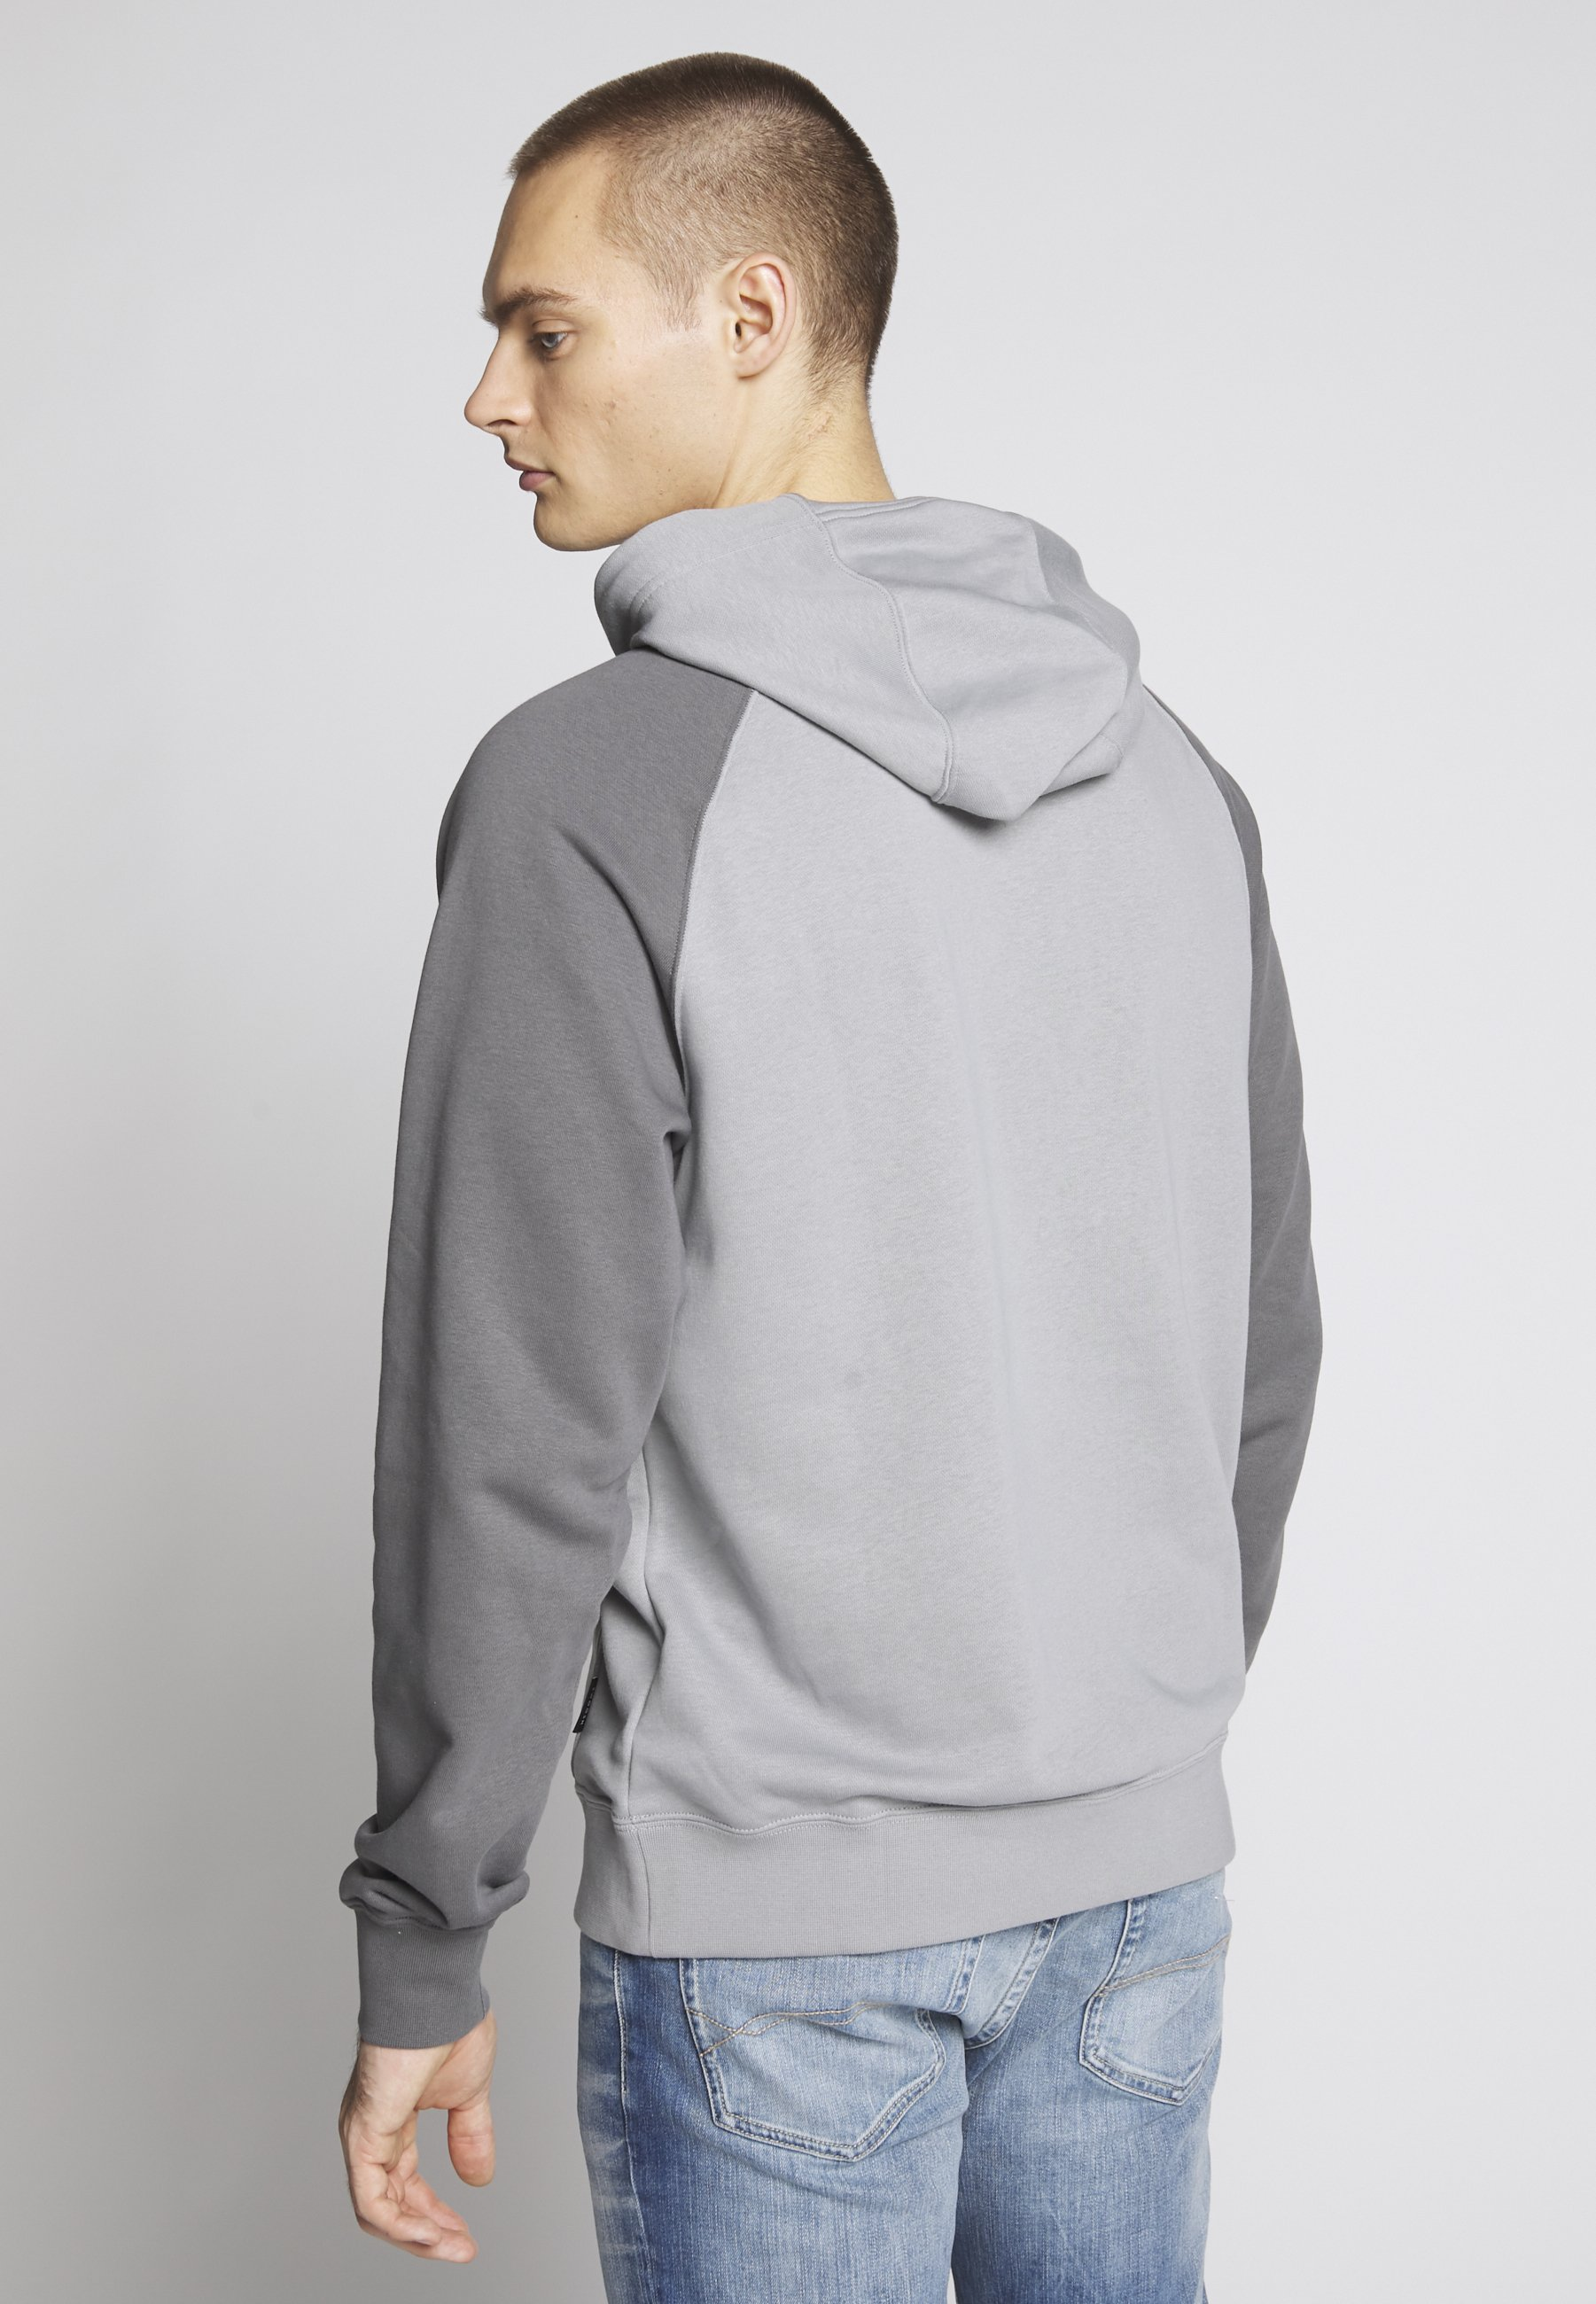 HOODIE Sweat à capuche particle greyiron greywhite